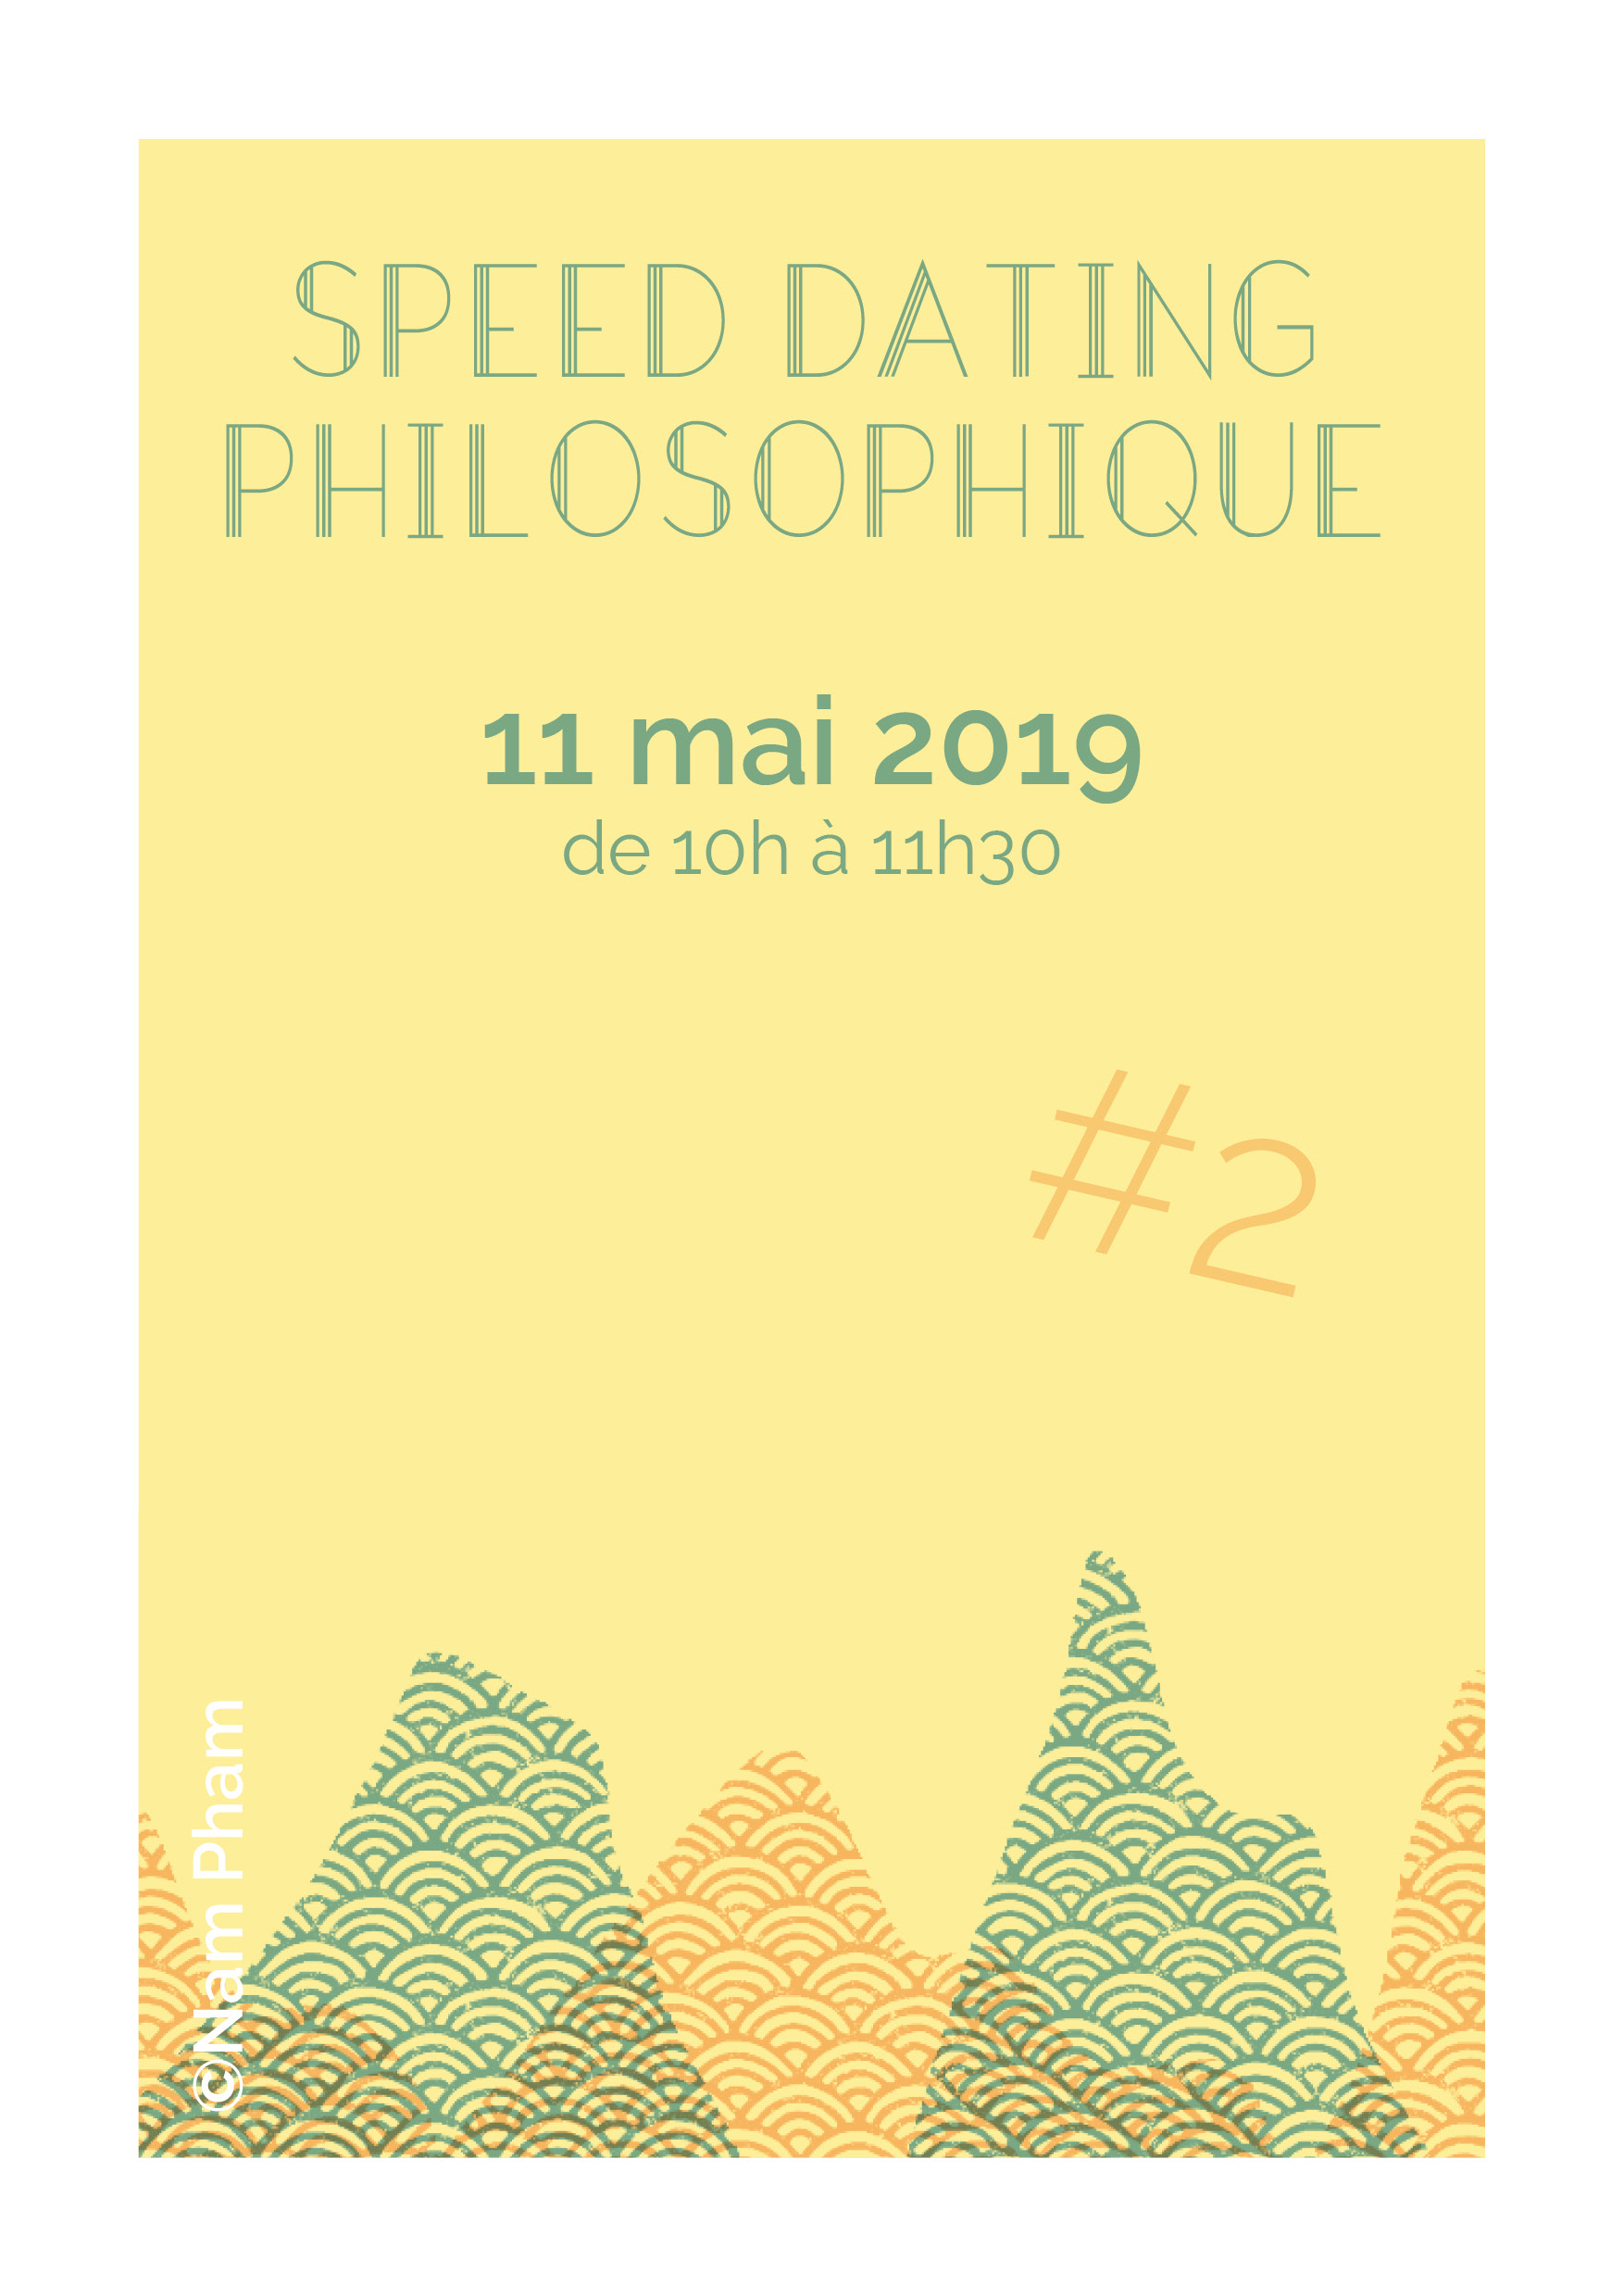 Speed Dating Philosophique // 11 mai